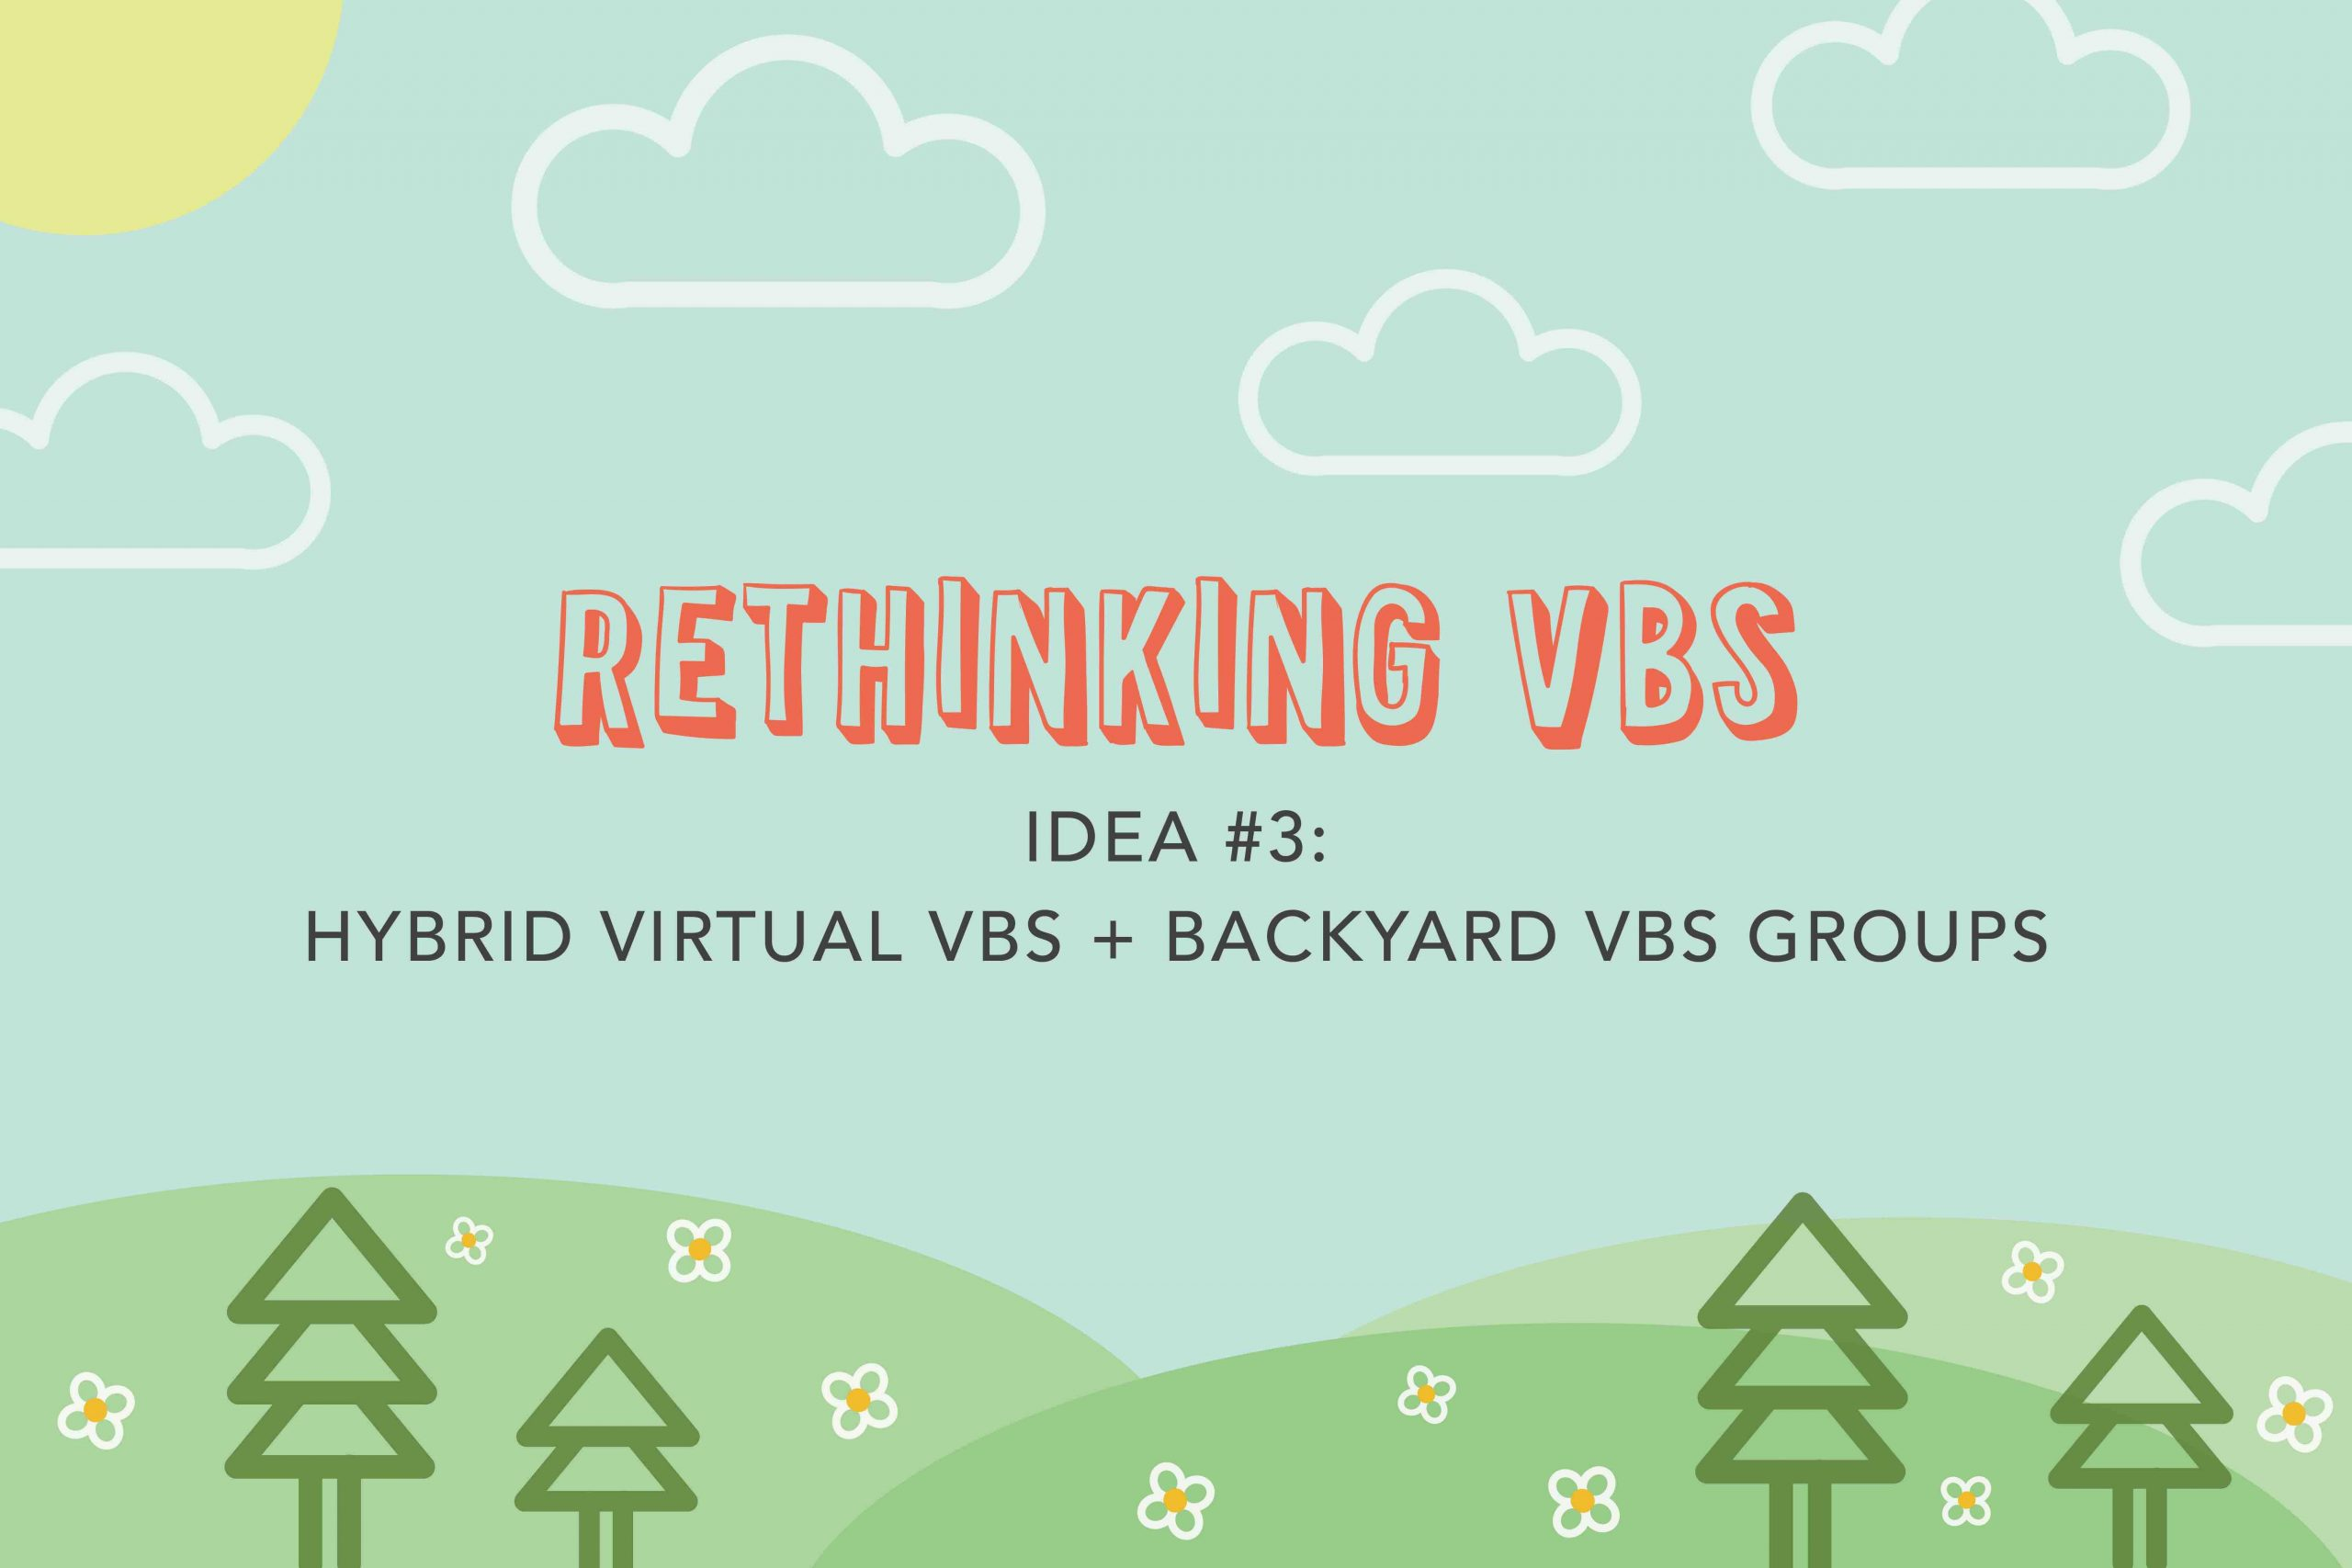 Hybrid Virtual VBS and Backyard VBS Groups